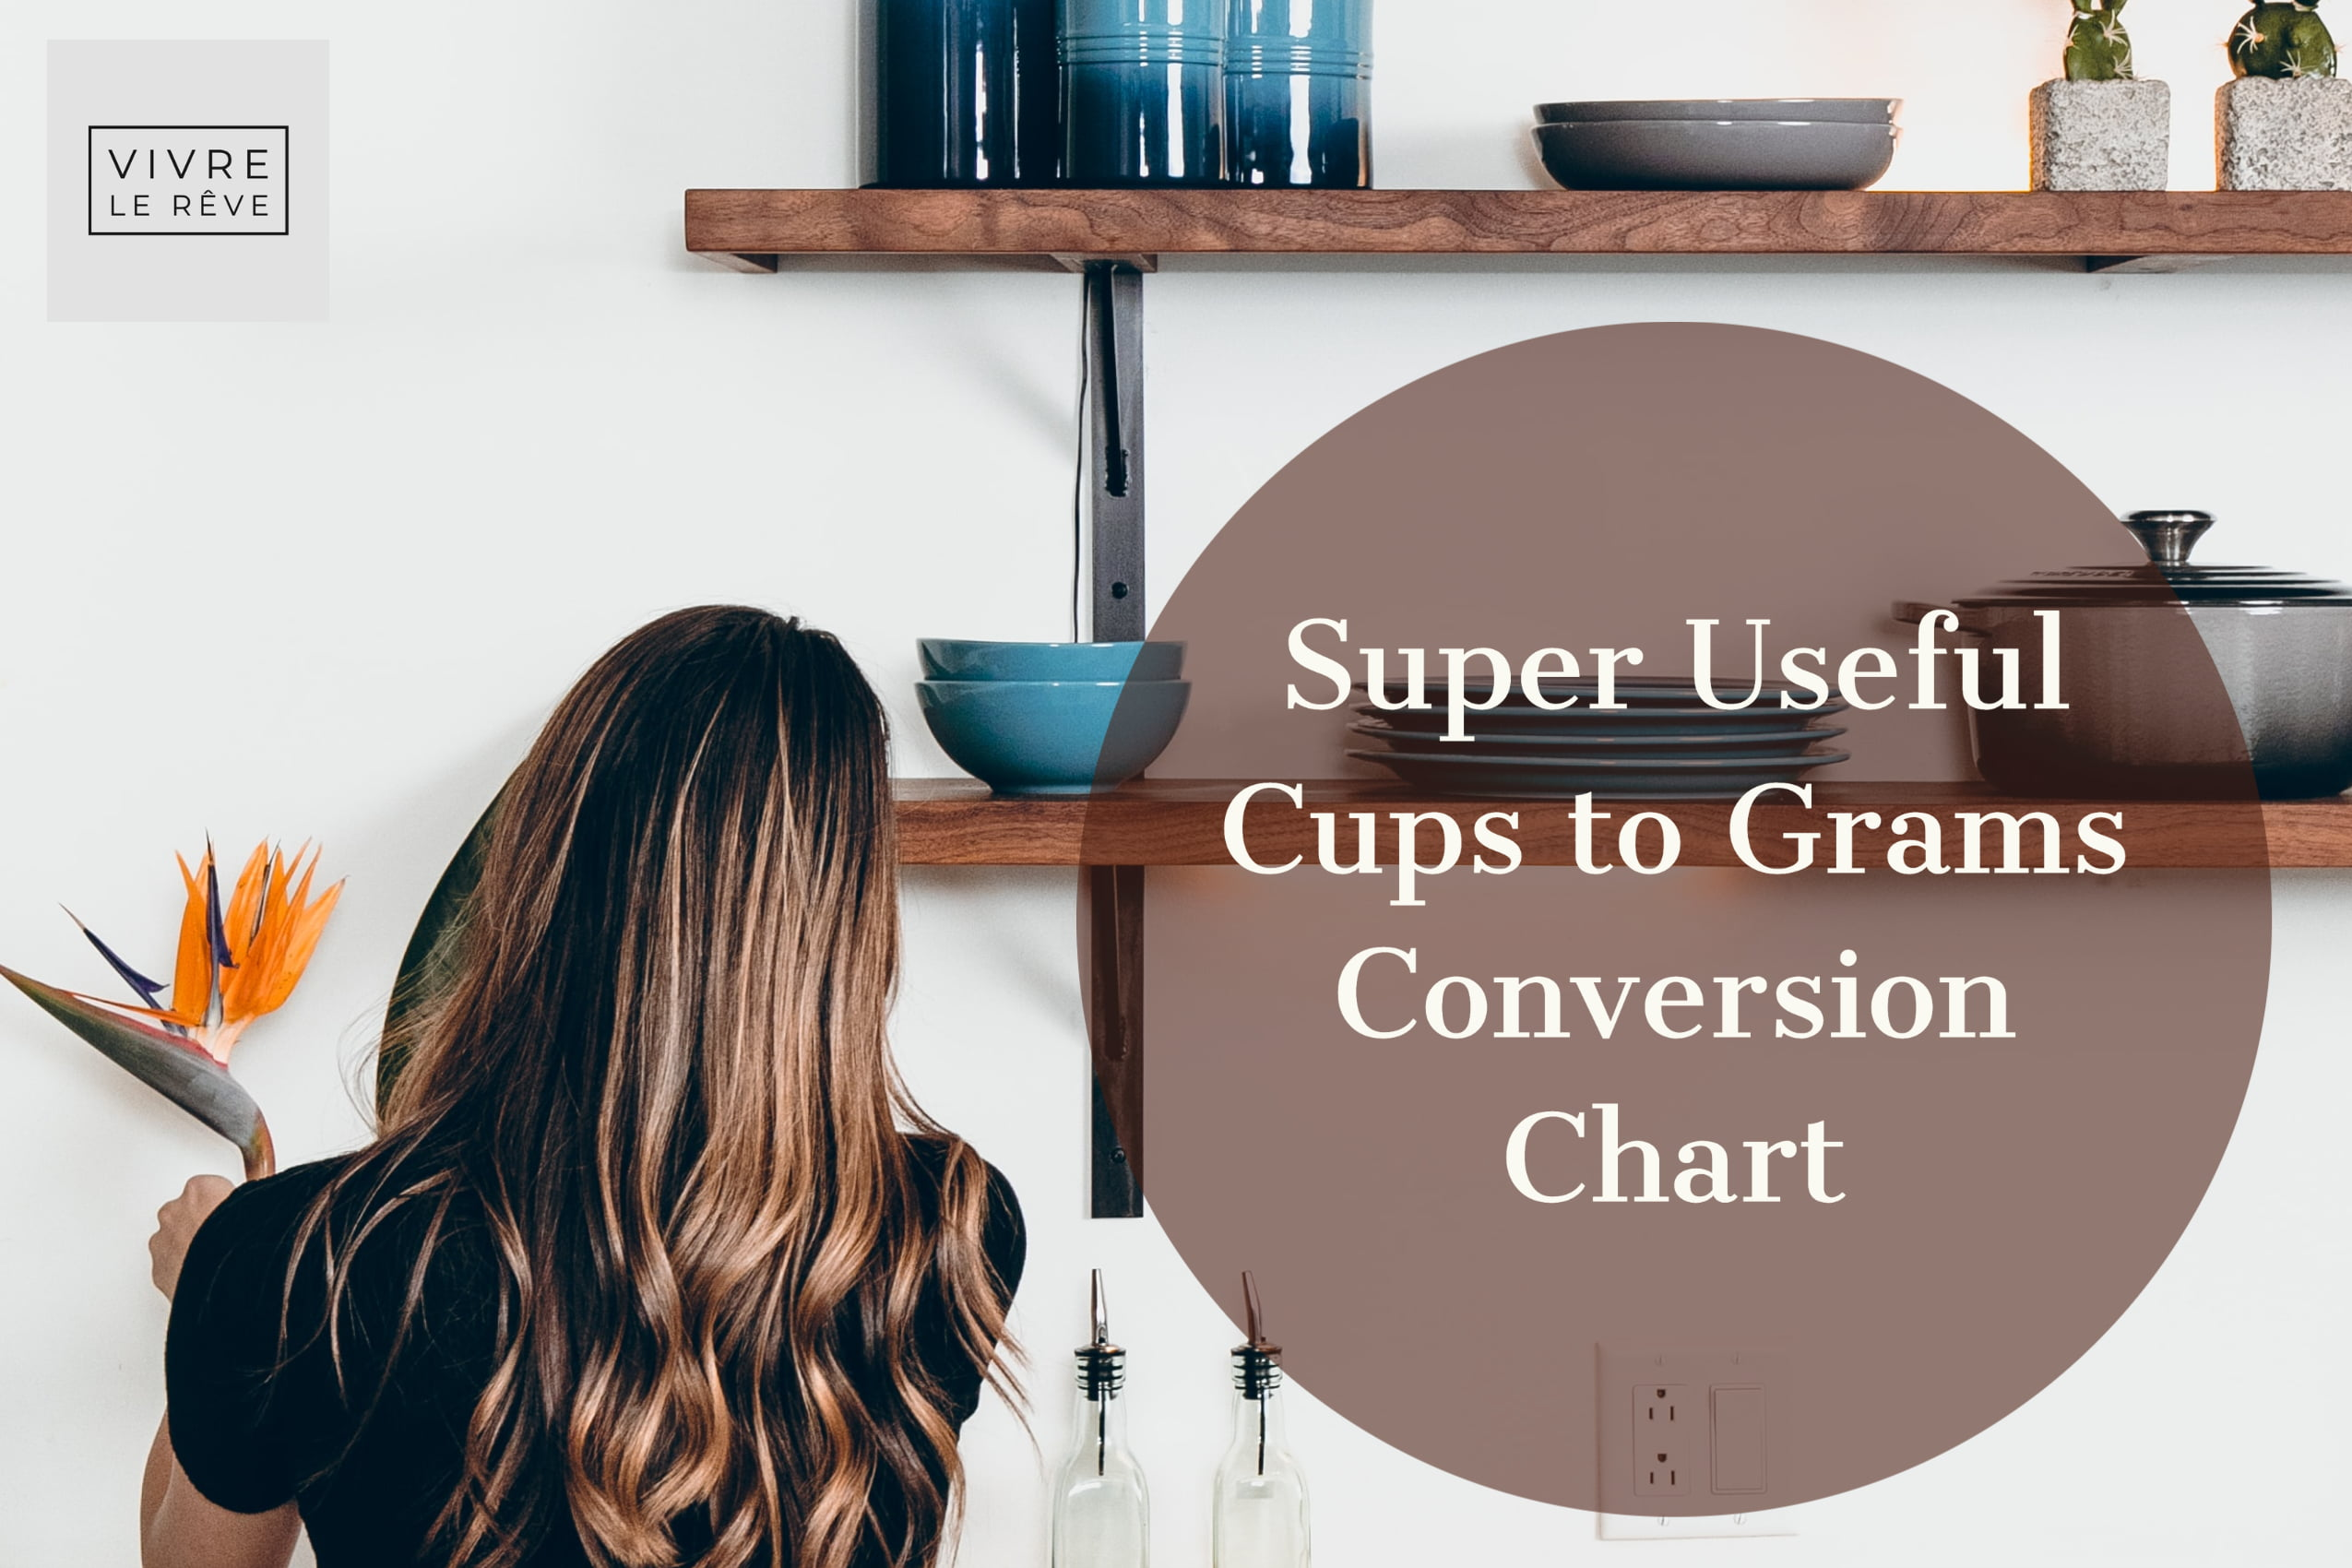 Super Useful Cups to Grams Conversion Chart